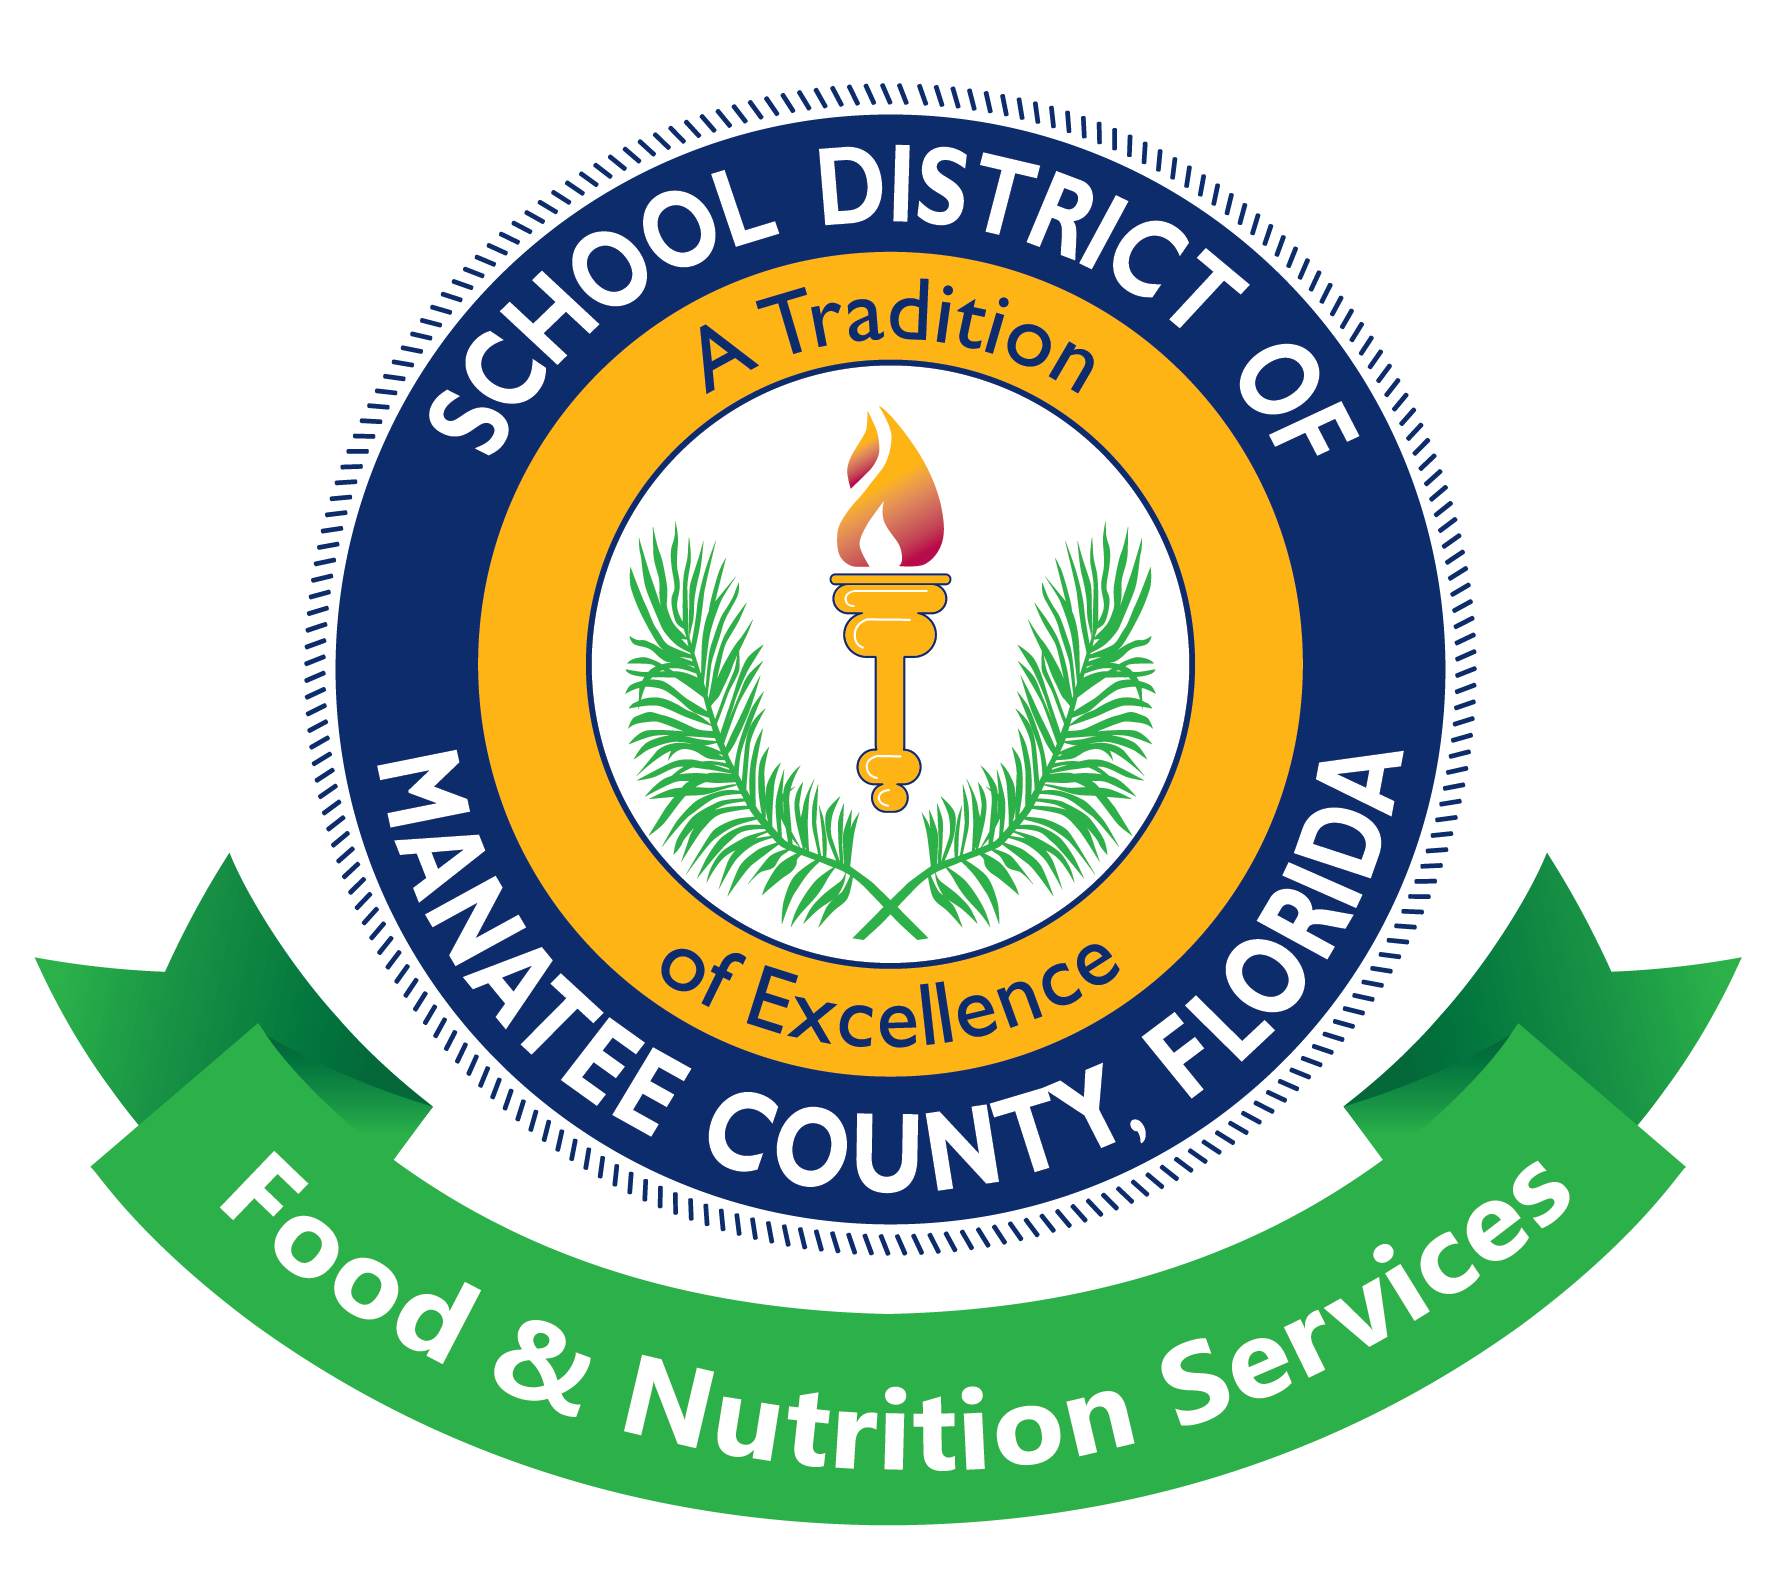 Manatee County School District logo